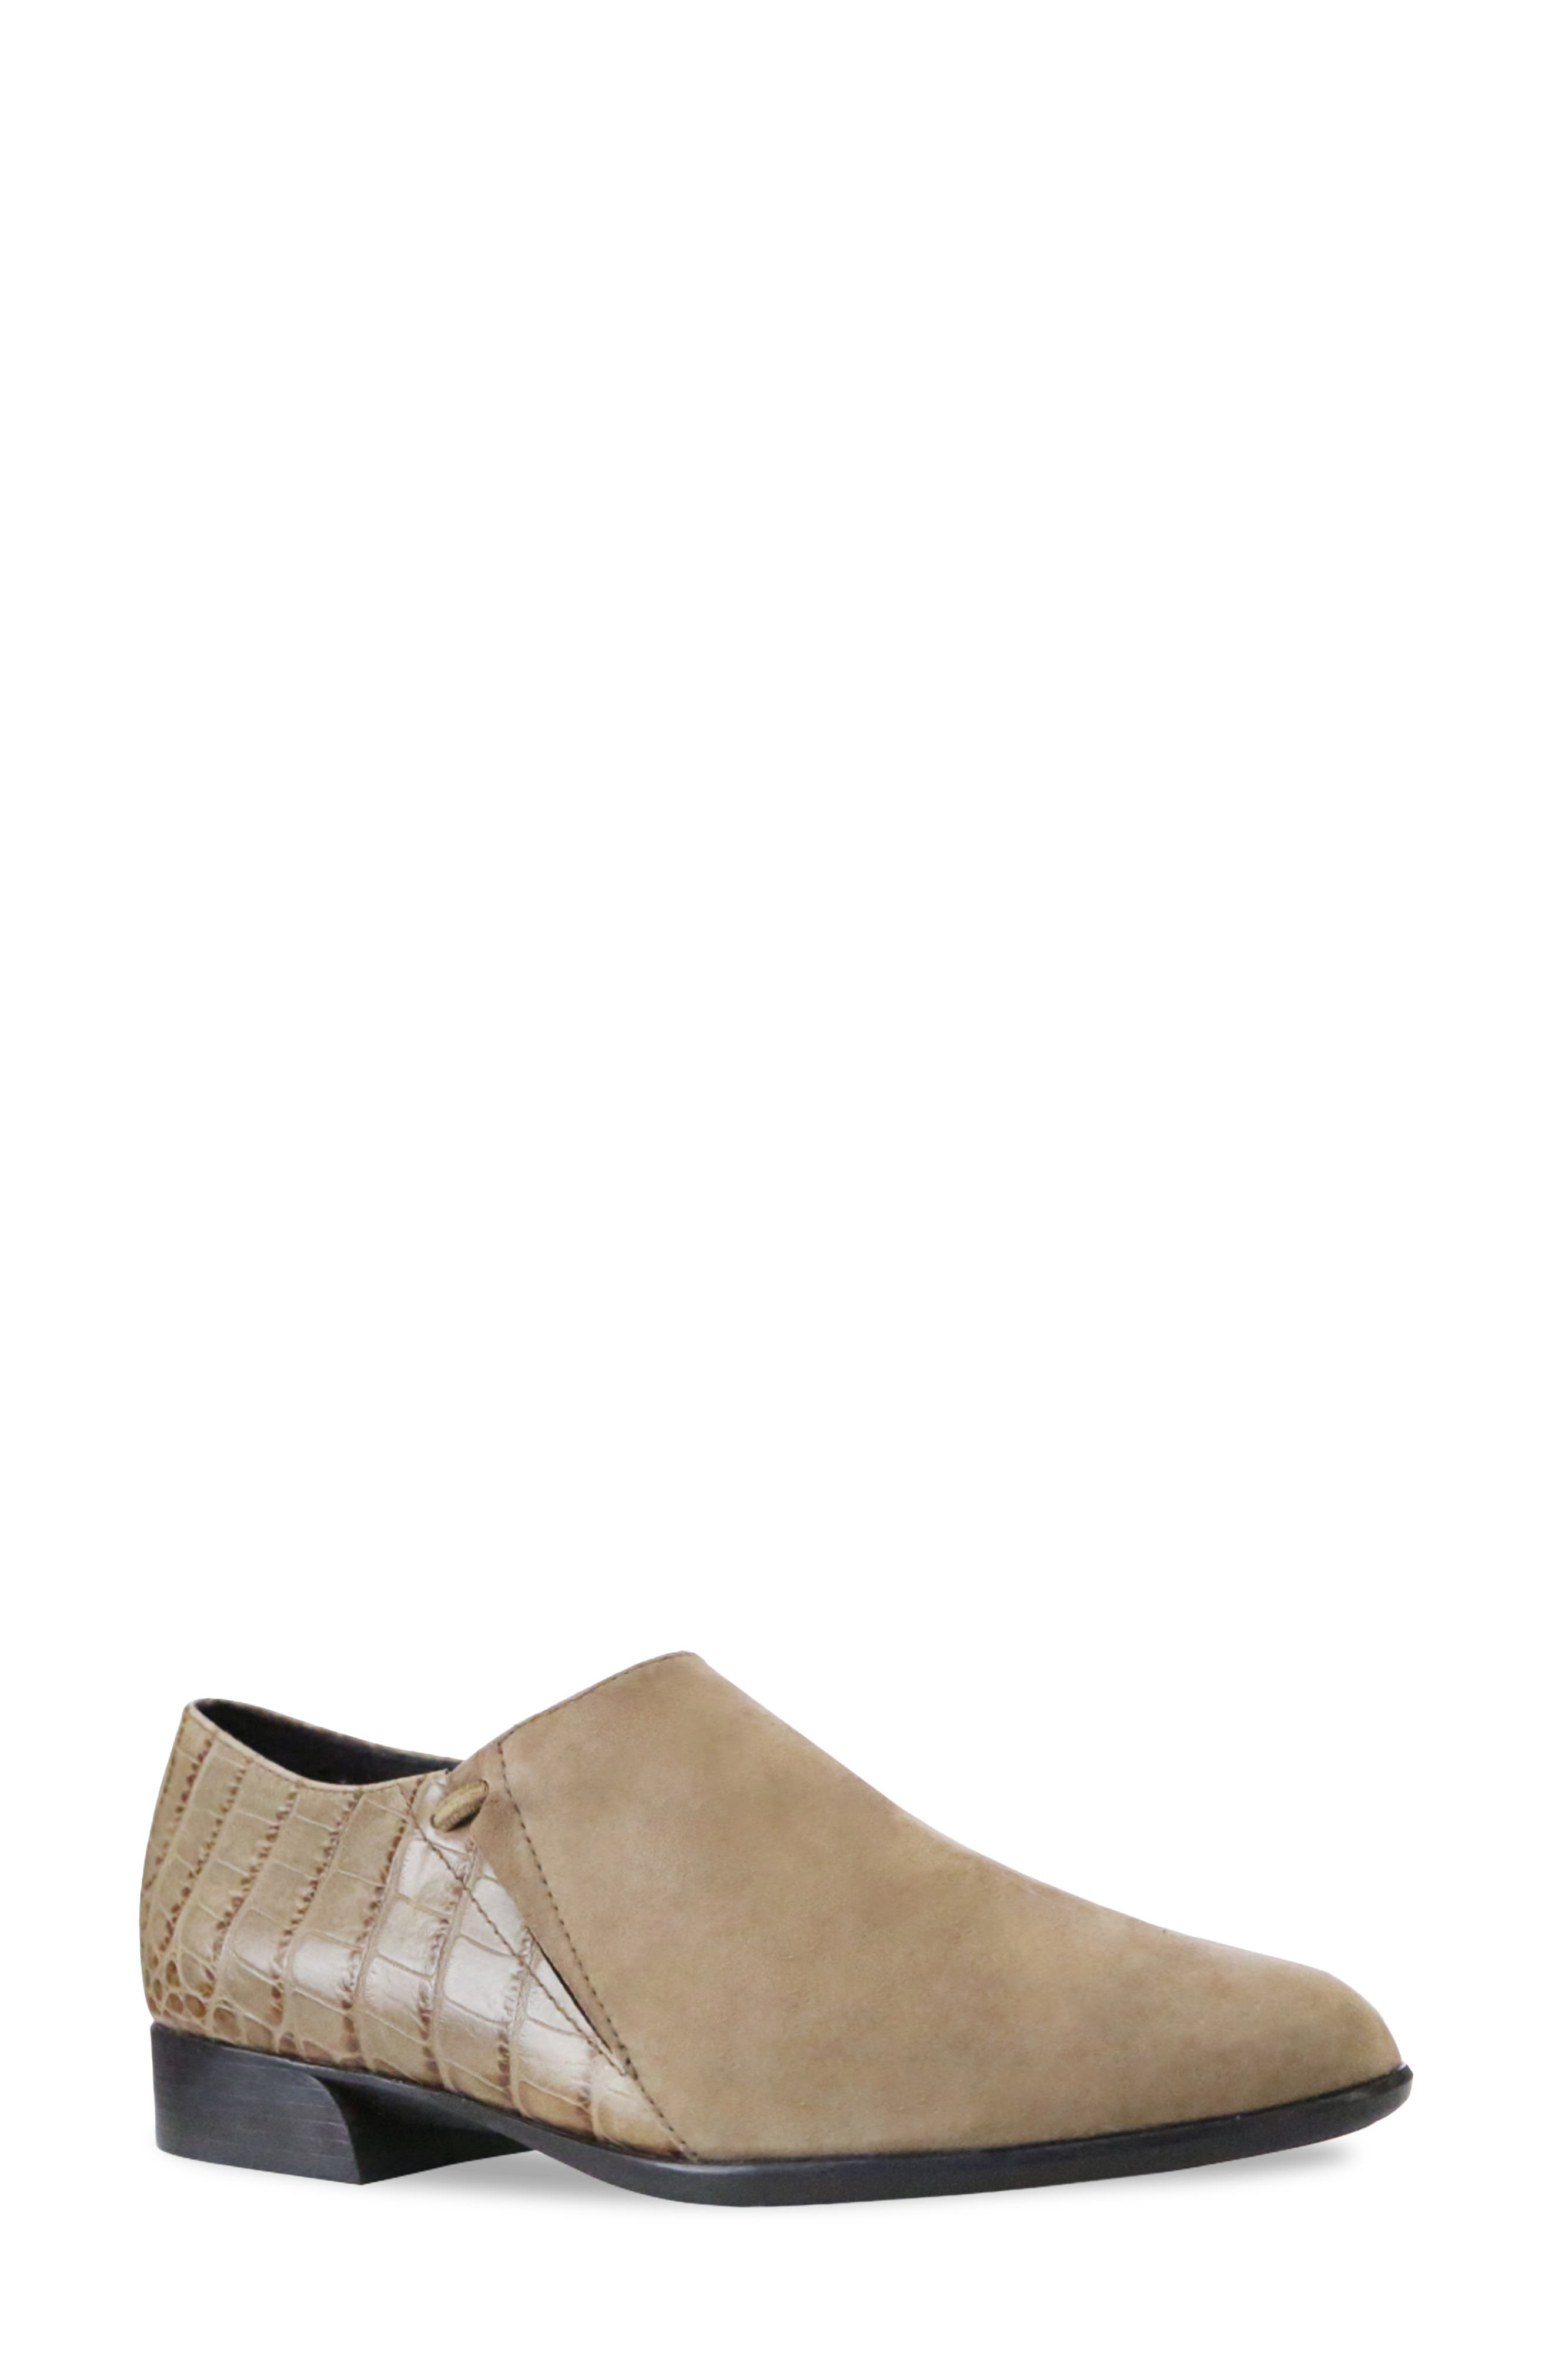 Mixed textures elevate the contemporary appeal of an almond-toe flat furnished with a breathable, moisture-wicking lining. Style Name: Munro Marteen Flat (Women). Style Number: 6093594. Available in stores.